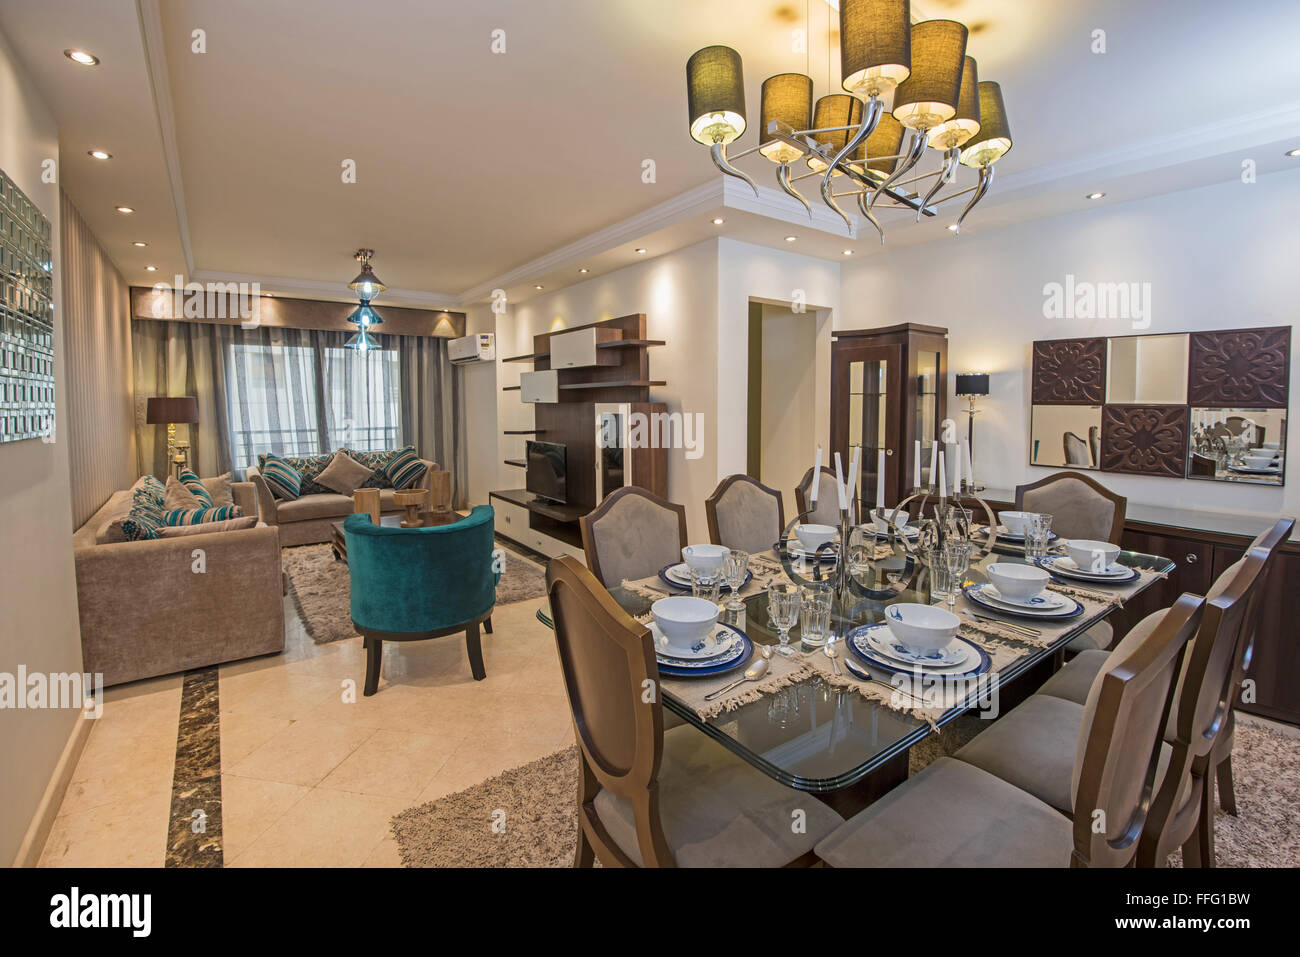 Interior design of a luxury apartment show home living for Interior design for dining area